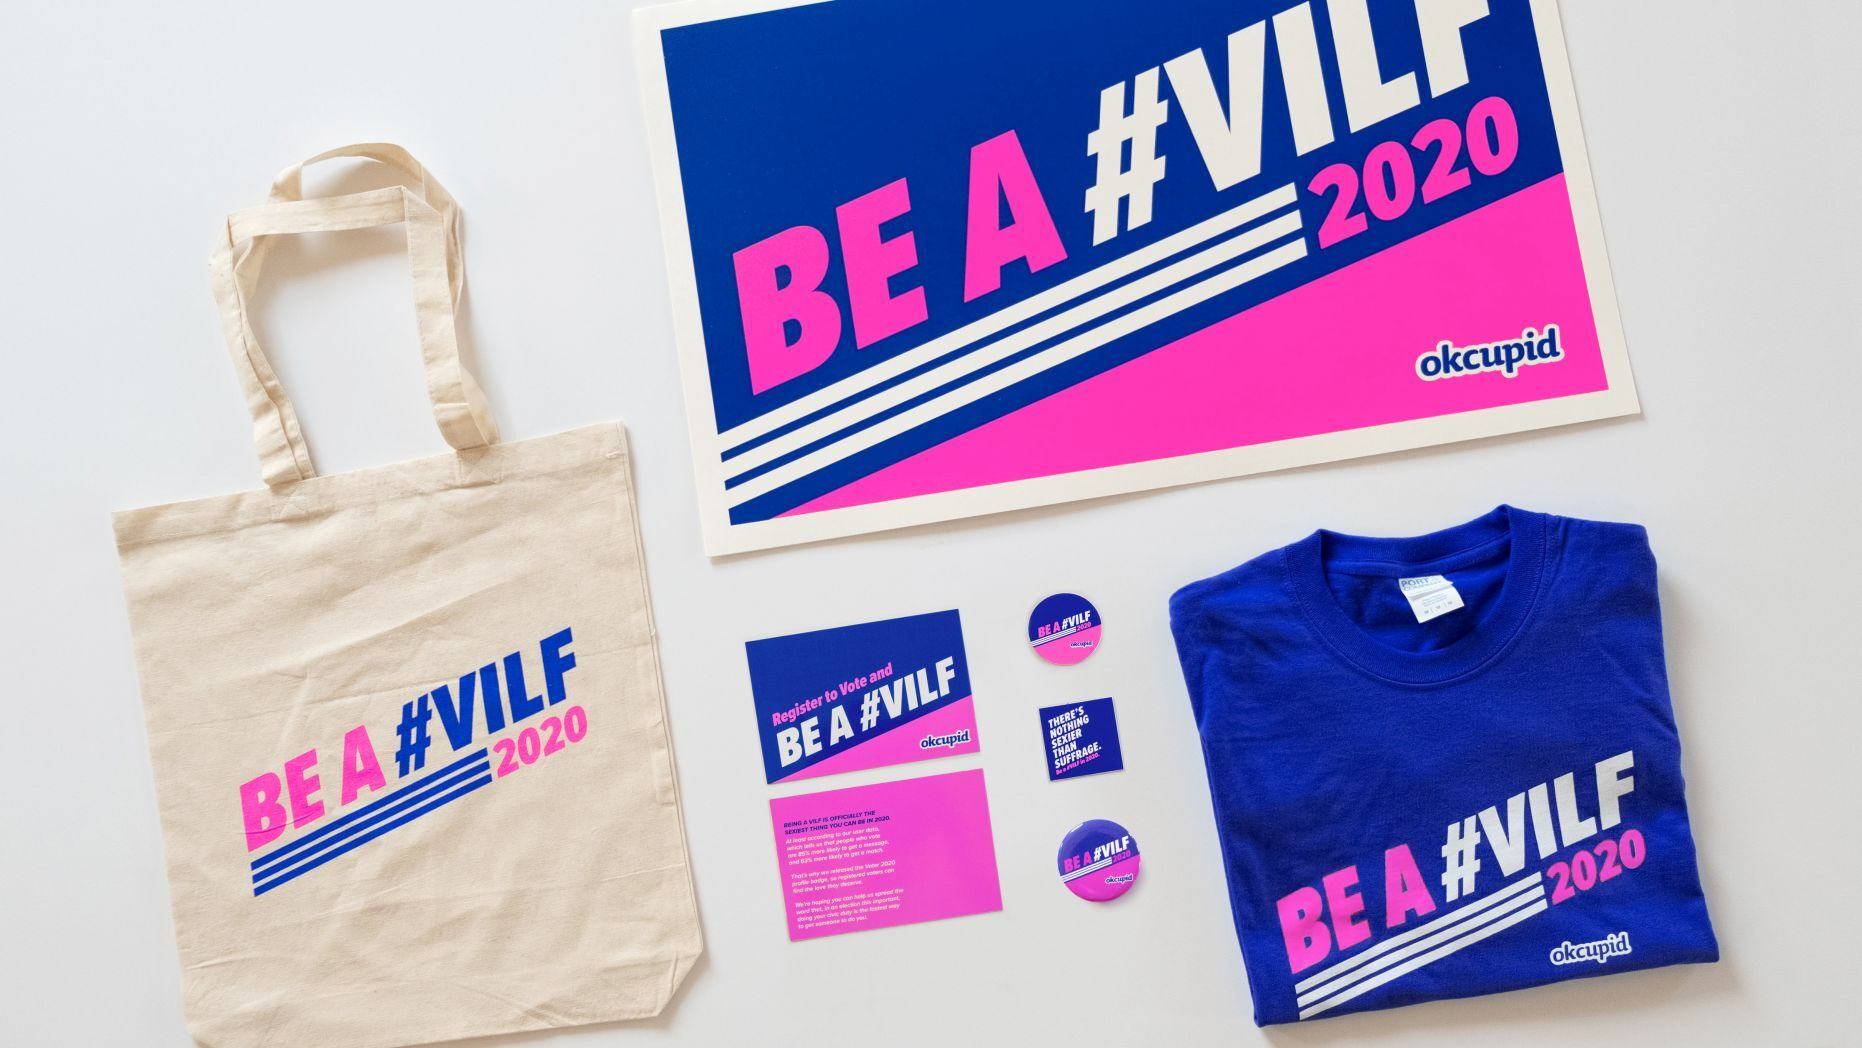 Risqué VILF Badge Promotes Voting Registrations on OkCupid